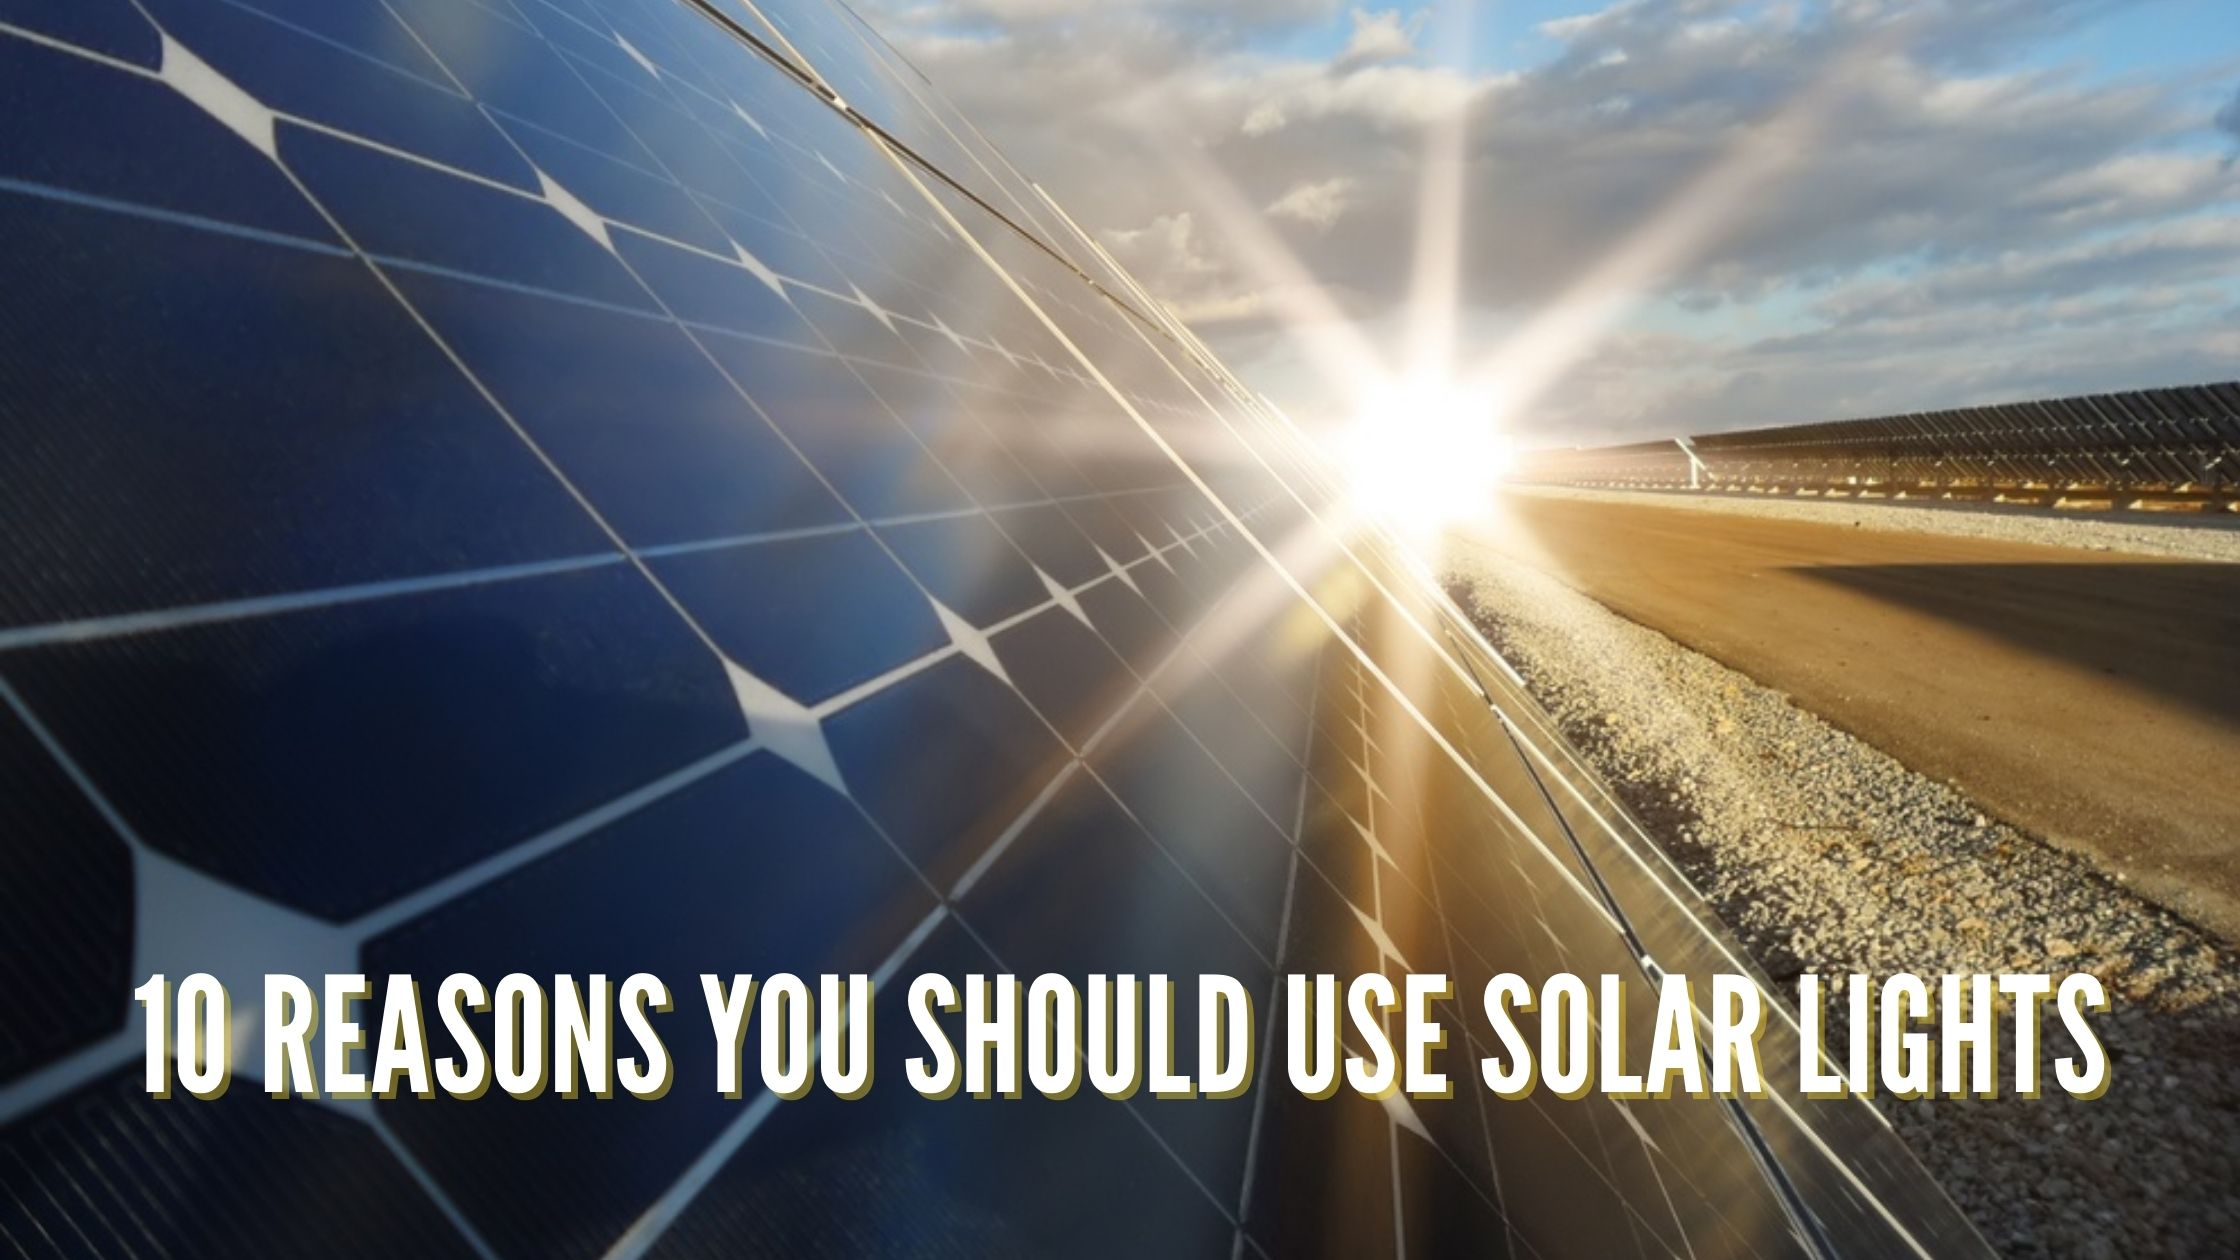 10 Reasons You Should Use Solar Lights